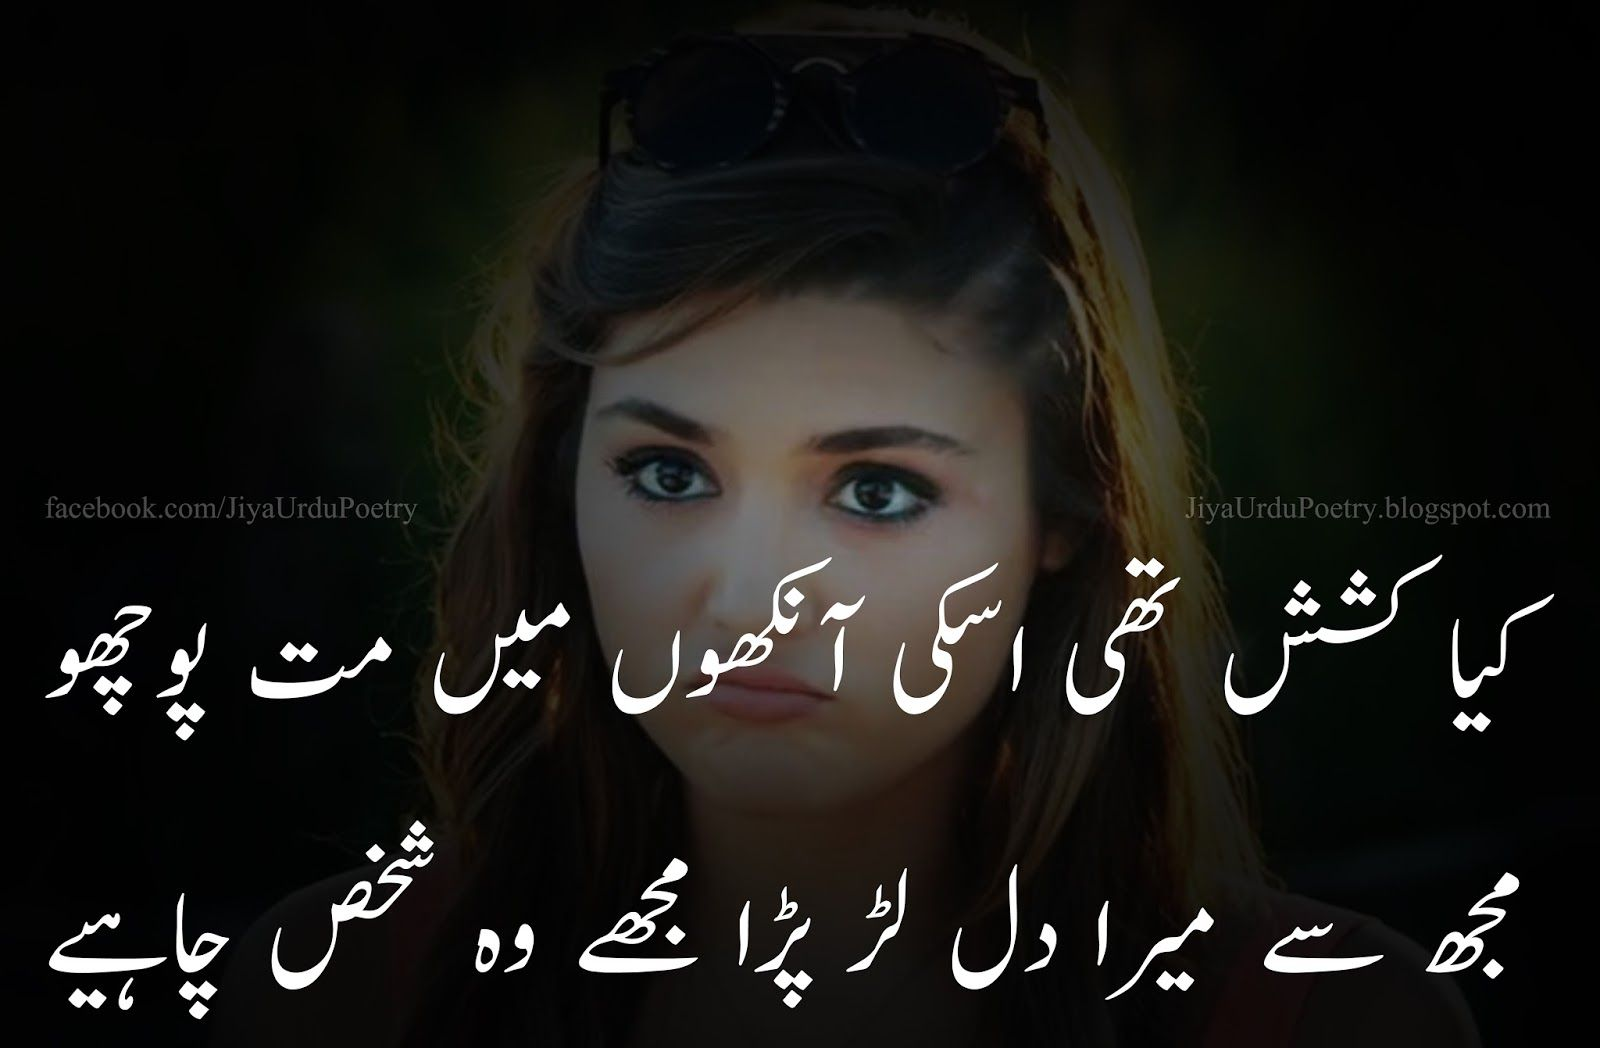 Urdu Shayari Poetry Pics Poetry pic, Love poetry images